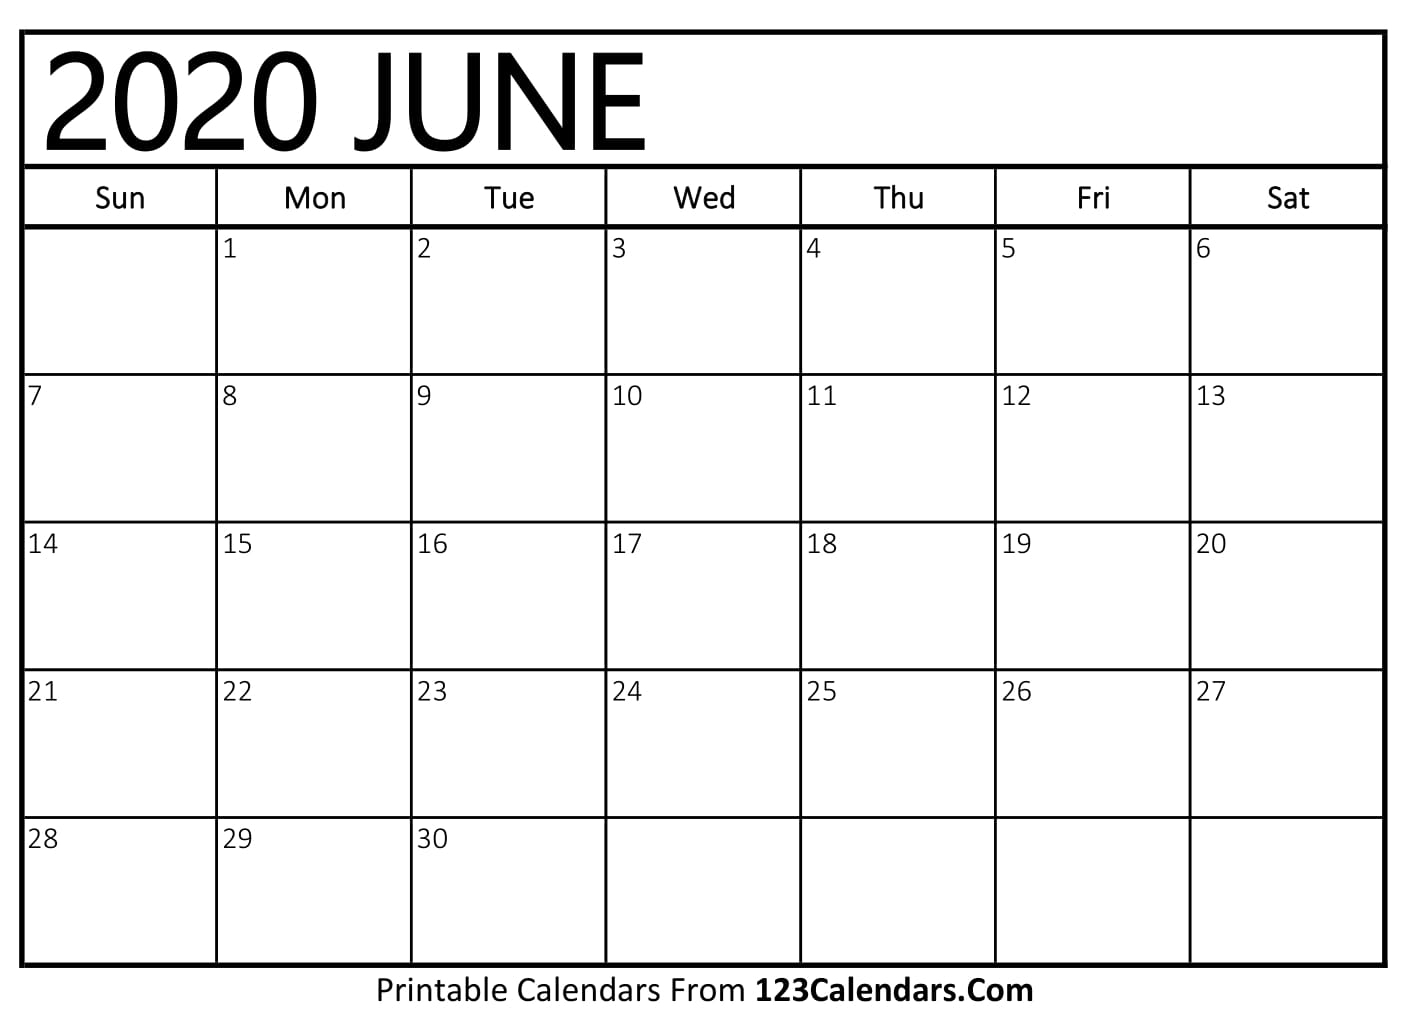 June 2020 Printable Calendar | 123Calendars with Special Days In June 2020